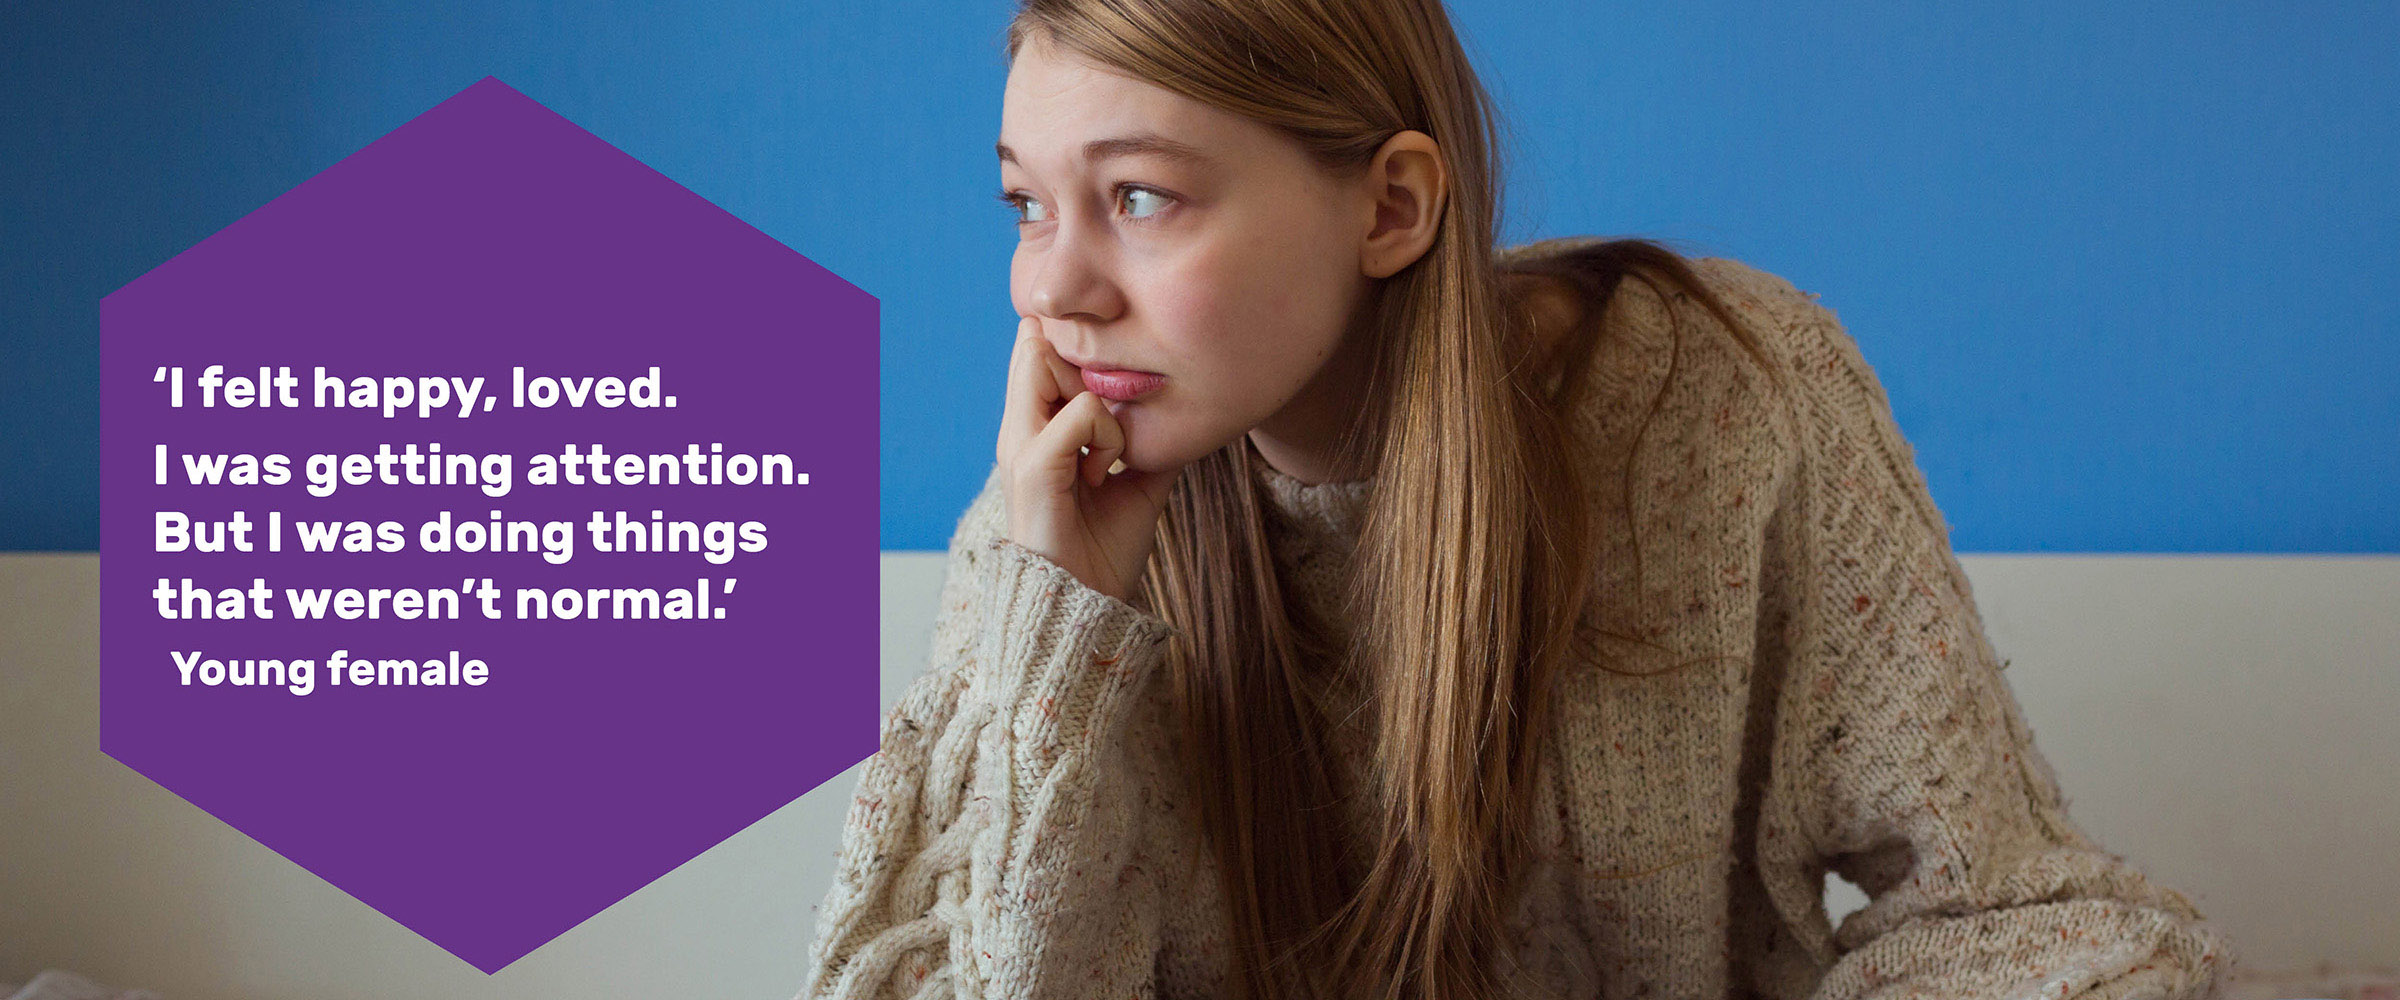 Close up of a girl looking to the side with text on the image about CSE